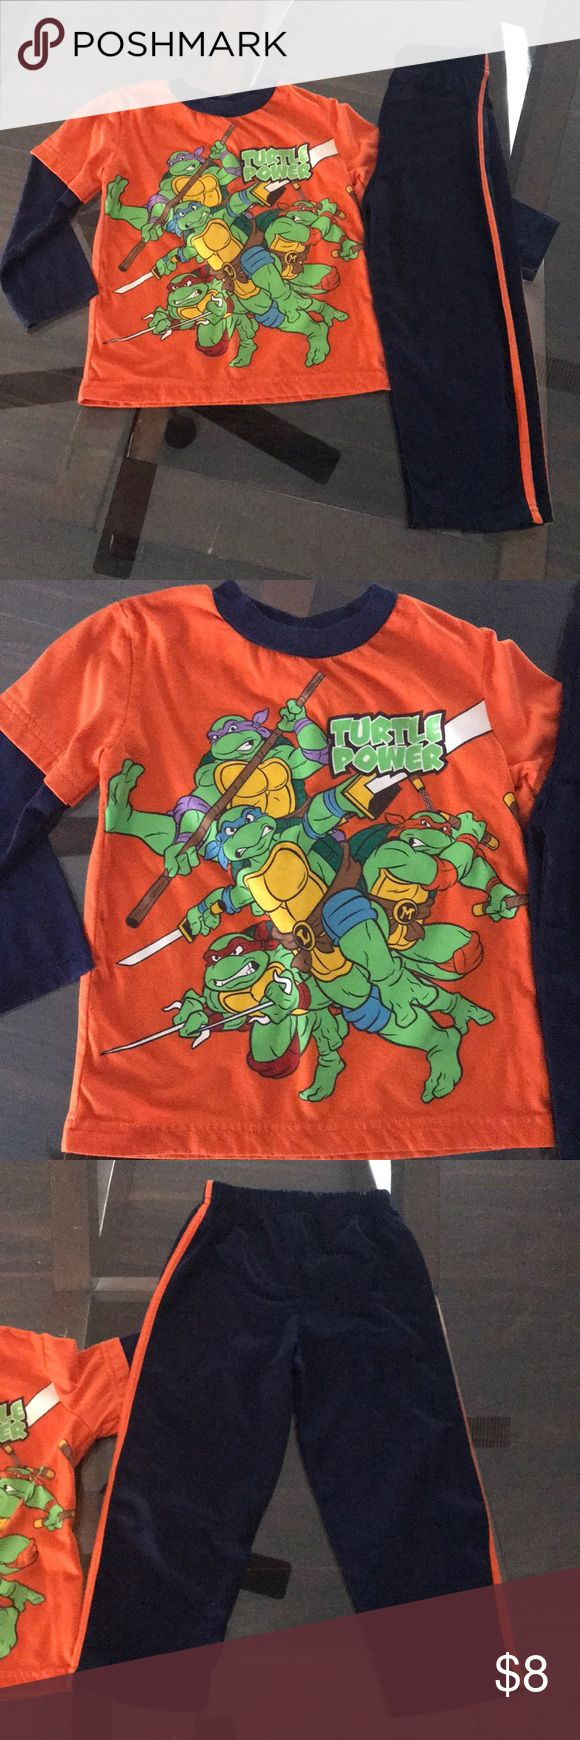 Ninja Turtle Outfit GUC, no holes or stains, accepting offers Nickelodeon Matching Sets